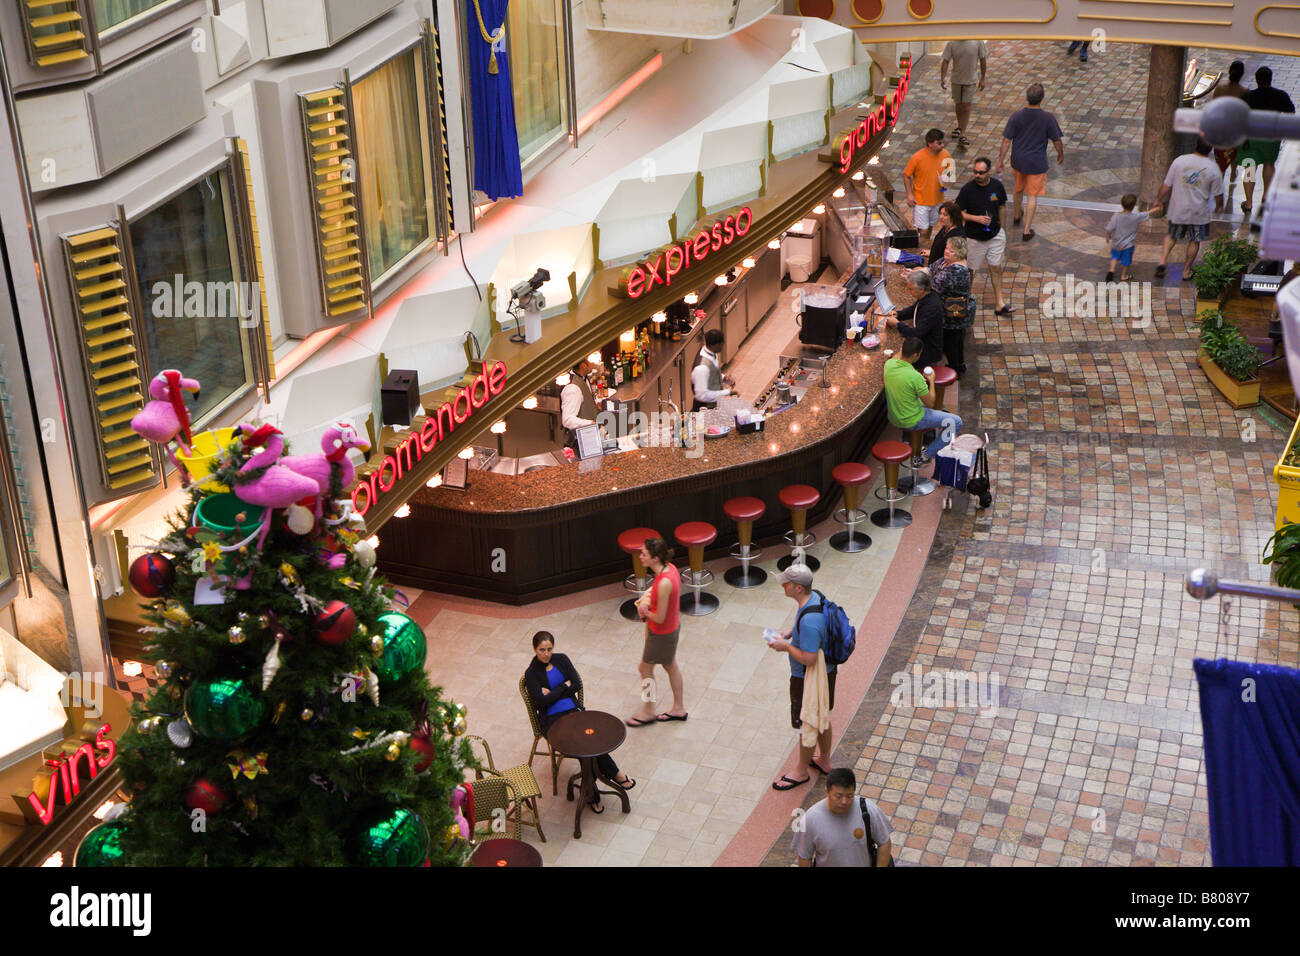 Christmas tree in Royal Promenade deck of Royal Caribbean Navigator of the Seas cruise ship - Stock Image